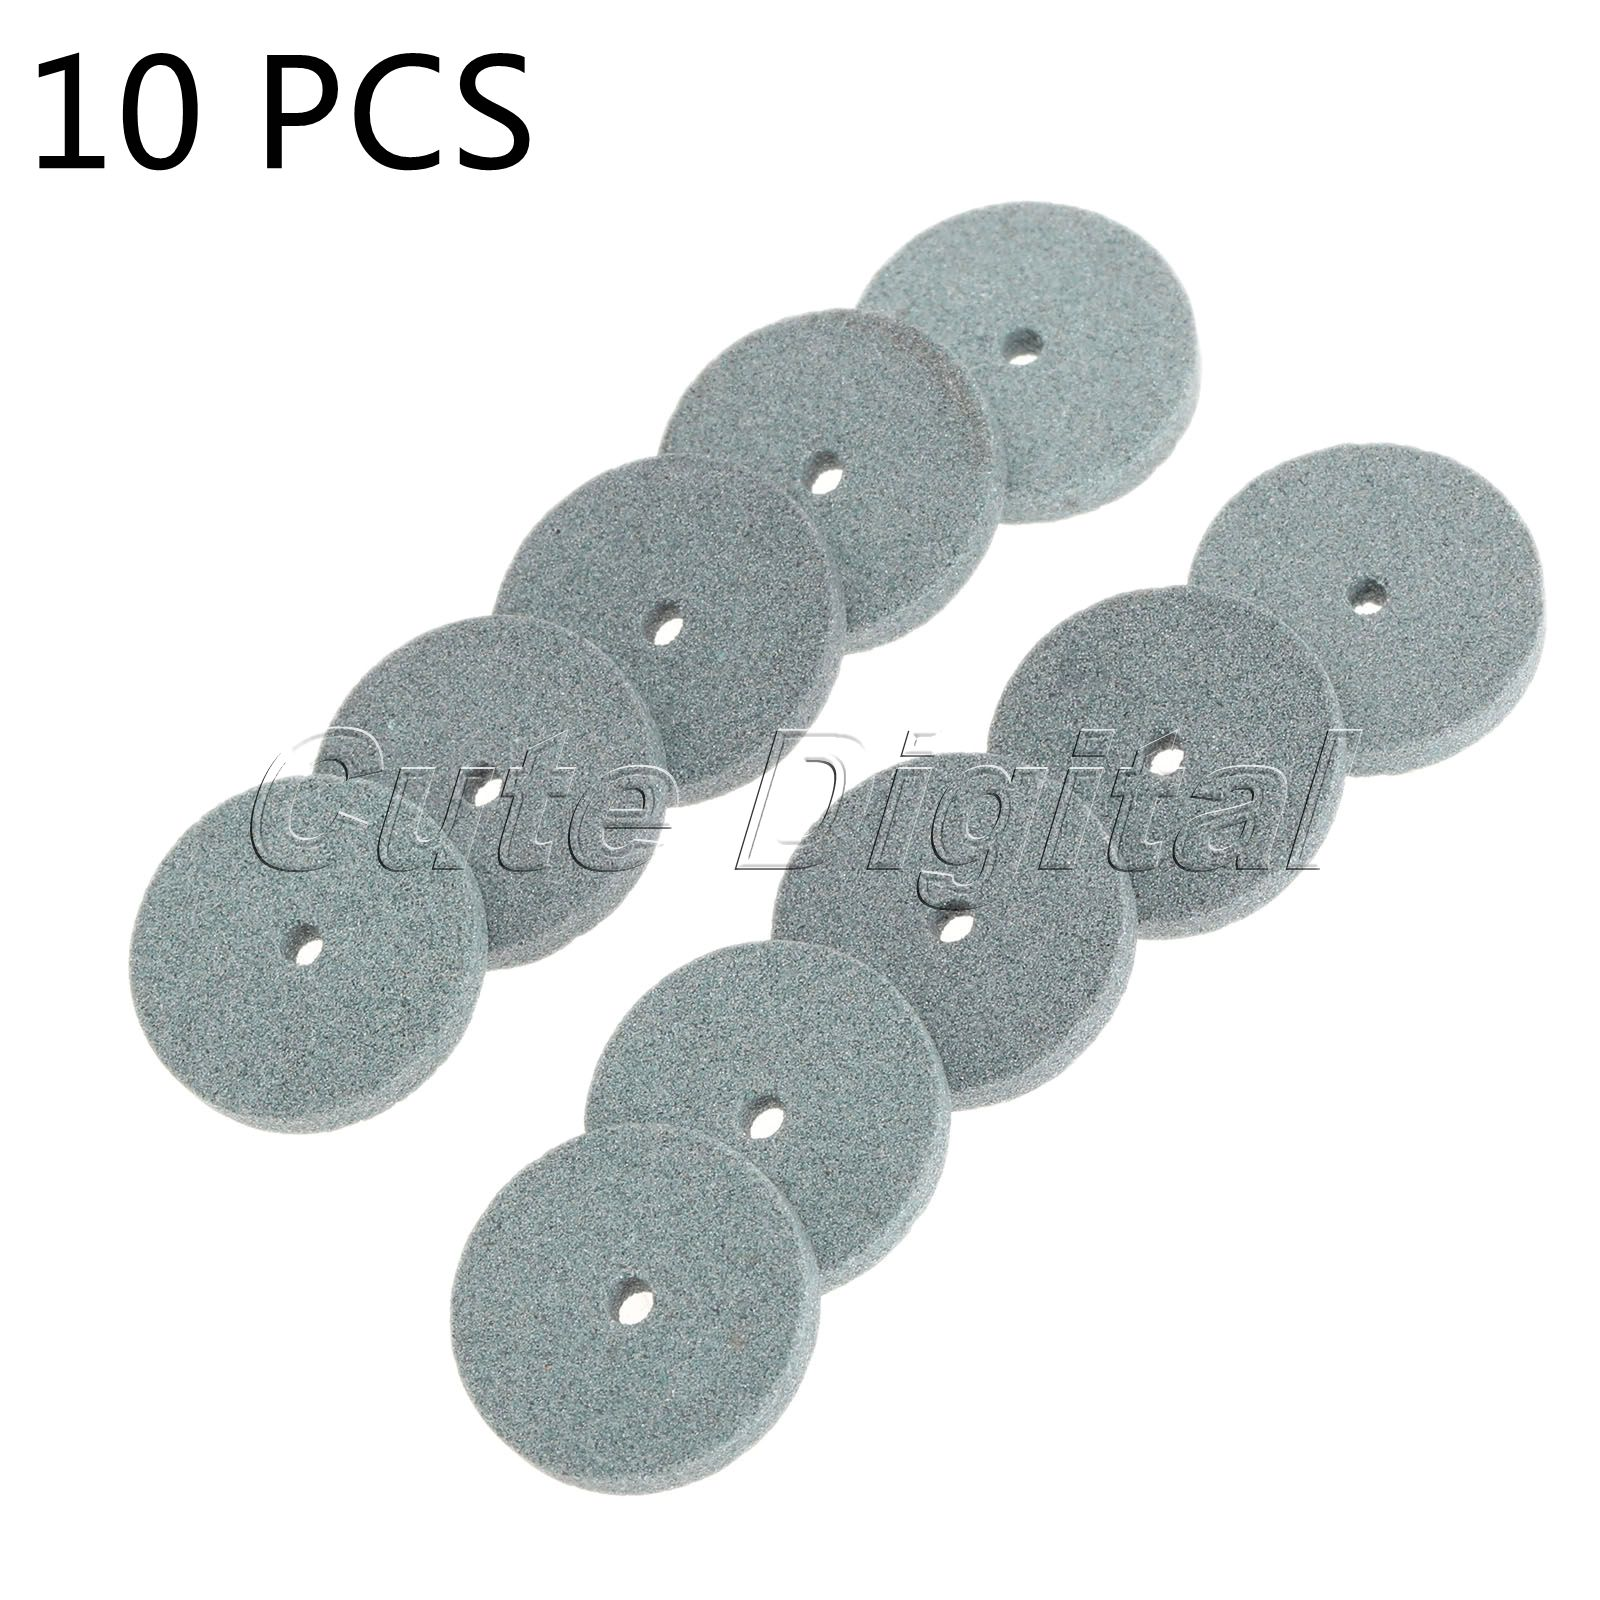 10pcs 20mm Diamond Grinding Wheel polishing dremel Mounted Stone Abrasive Tools Dremel Rotary Tool acessorios para dremel 8 inch iron ore seal carving knife grinding abrasive rock hand polishing wheel 200